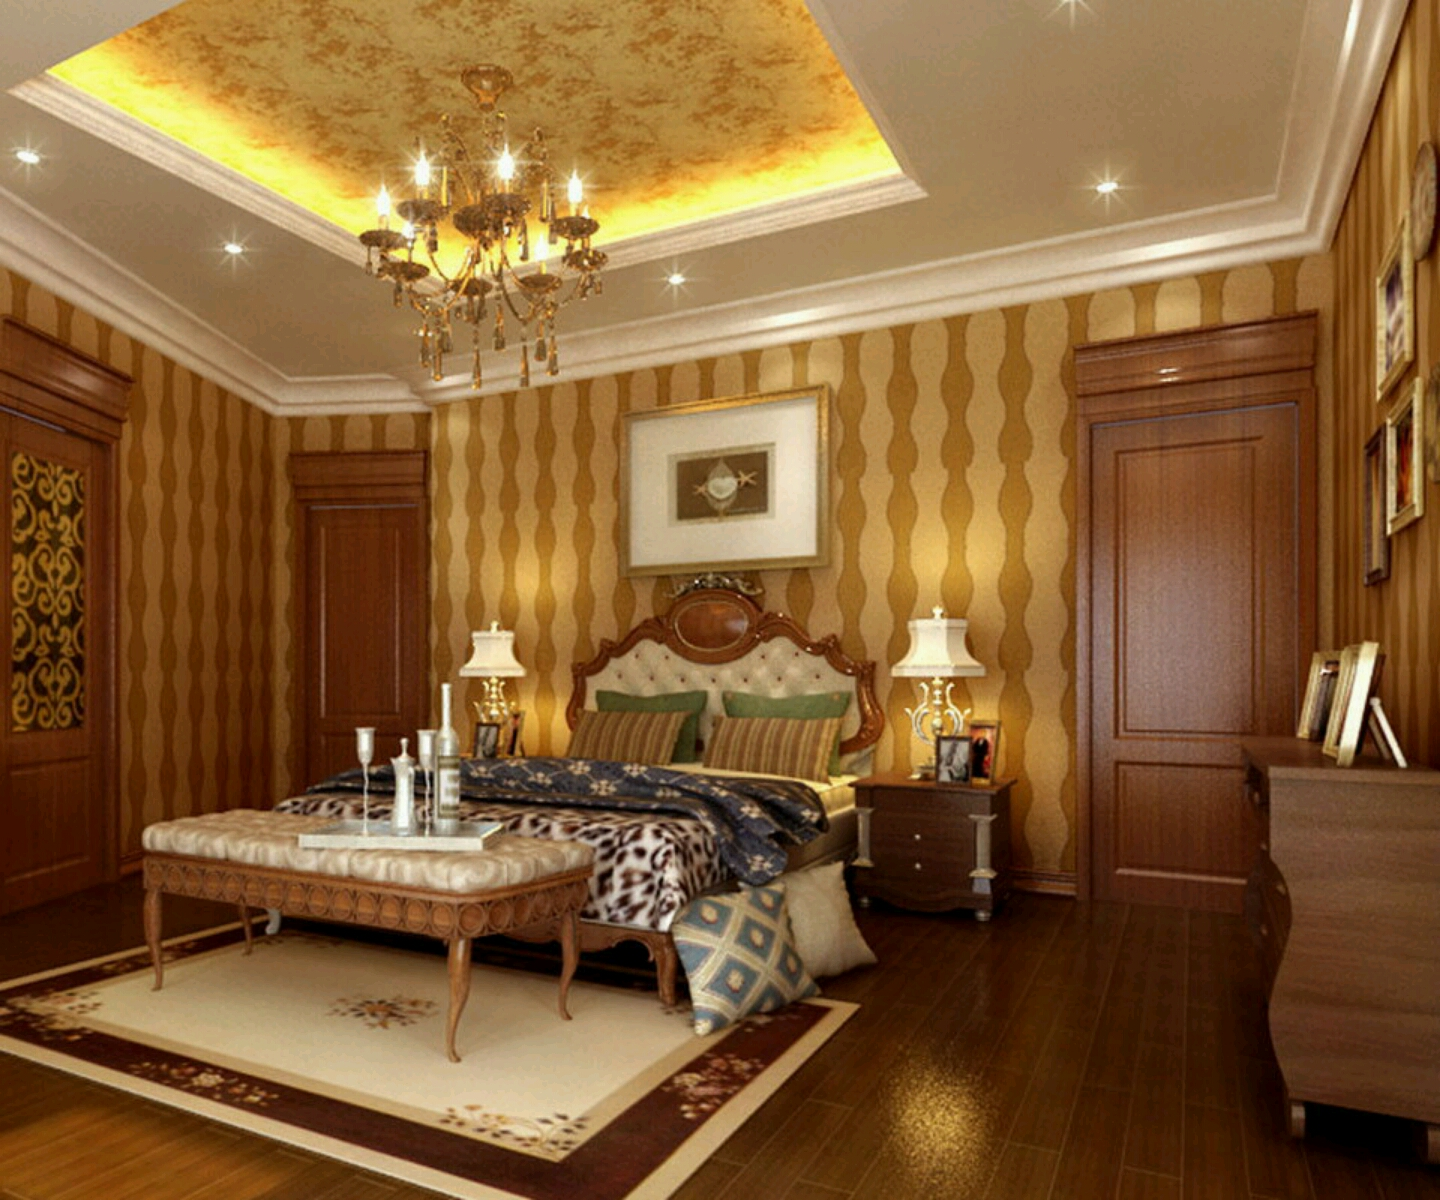 New home designs latest modern bedrooms designs ceiling for New bedroom design ideas